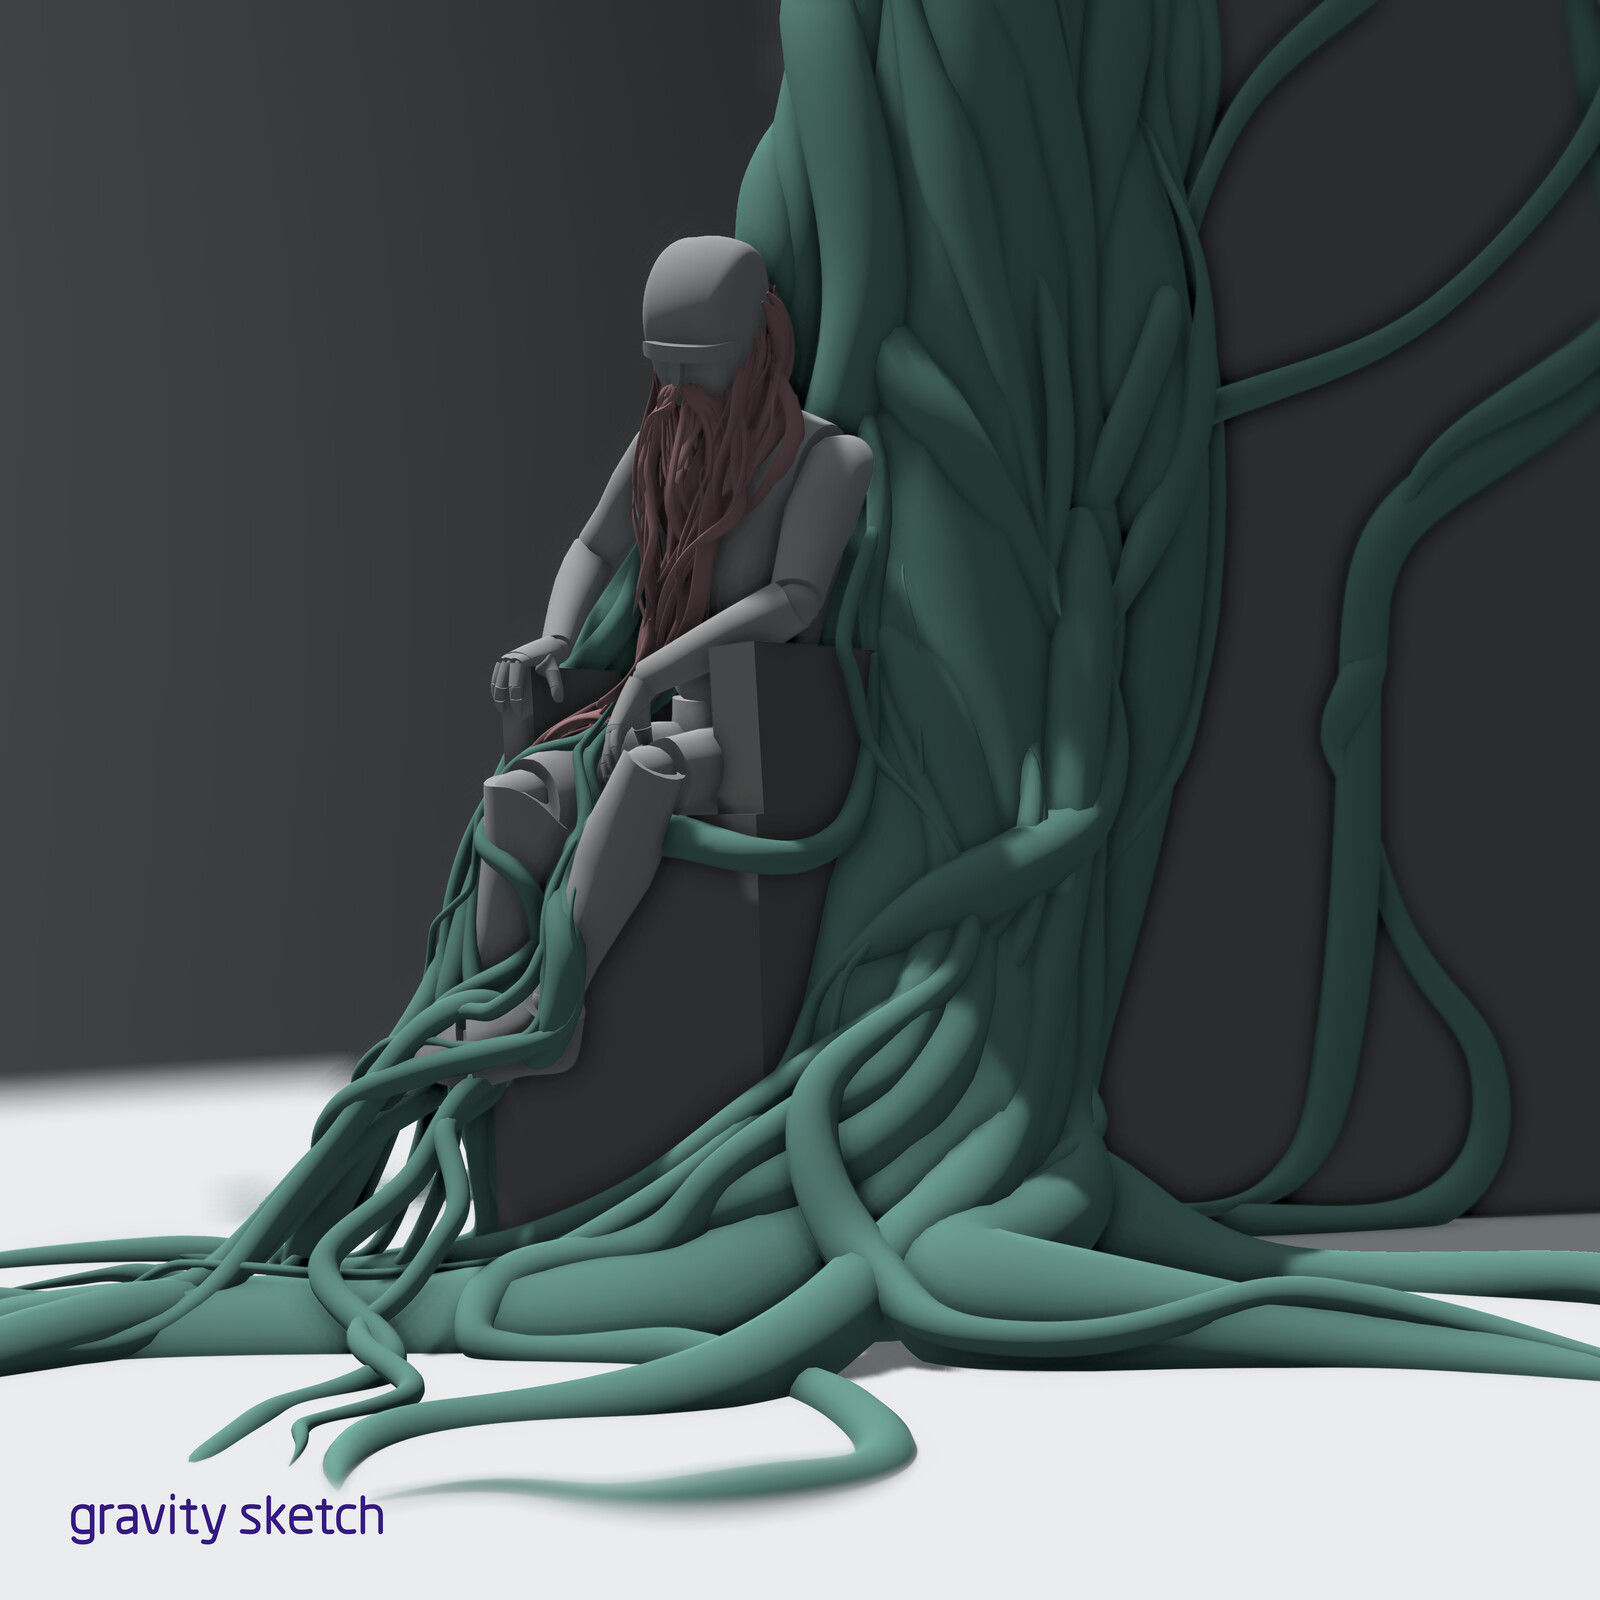 The old man/tree, sculpted in VR with Gravity Sketch